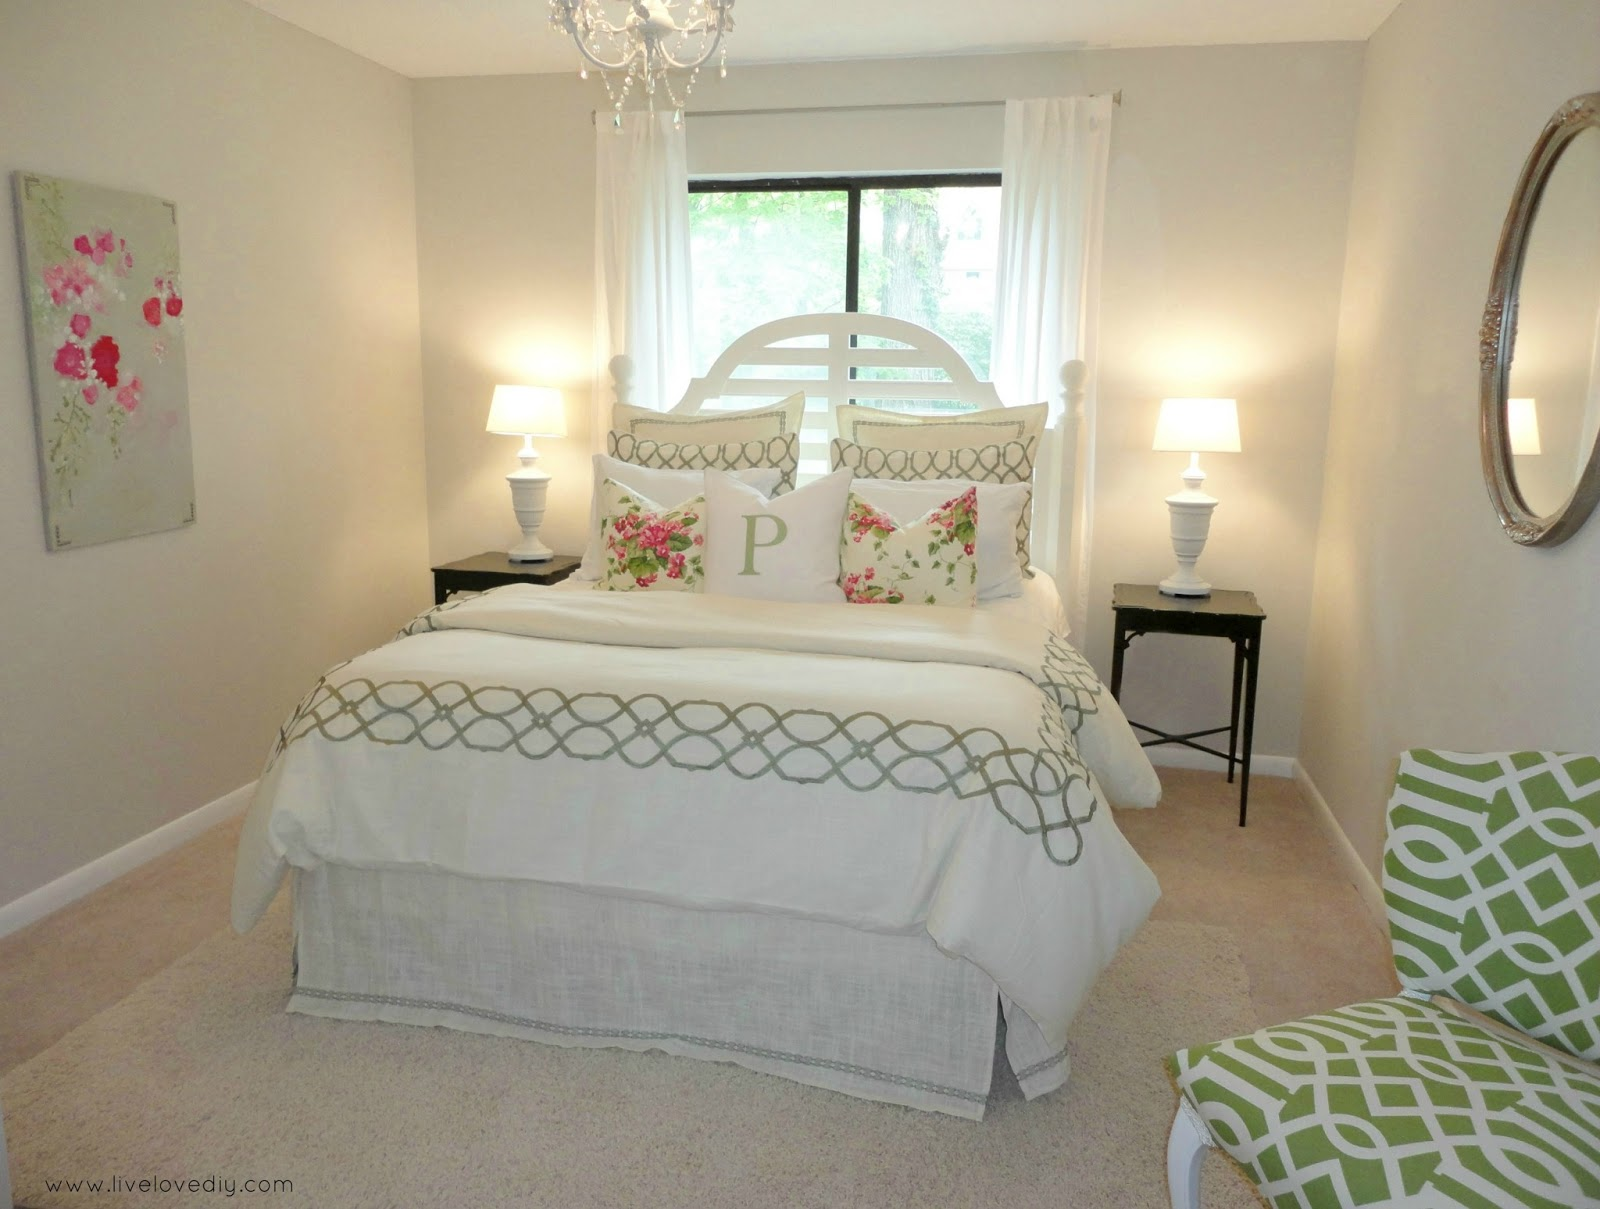 LiveLoveDIY: Decorating Bedrooms with Secondhand Finds ...